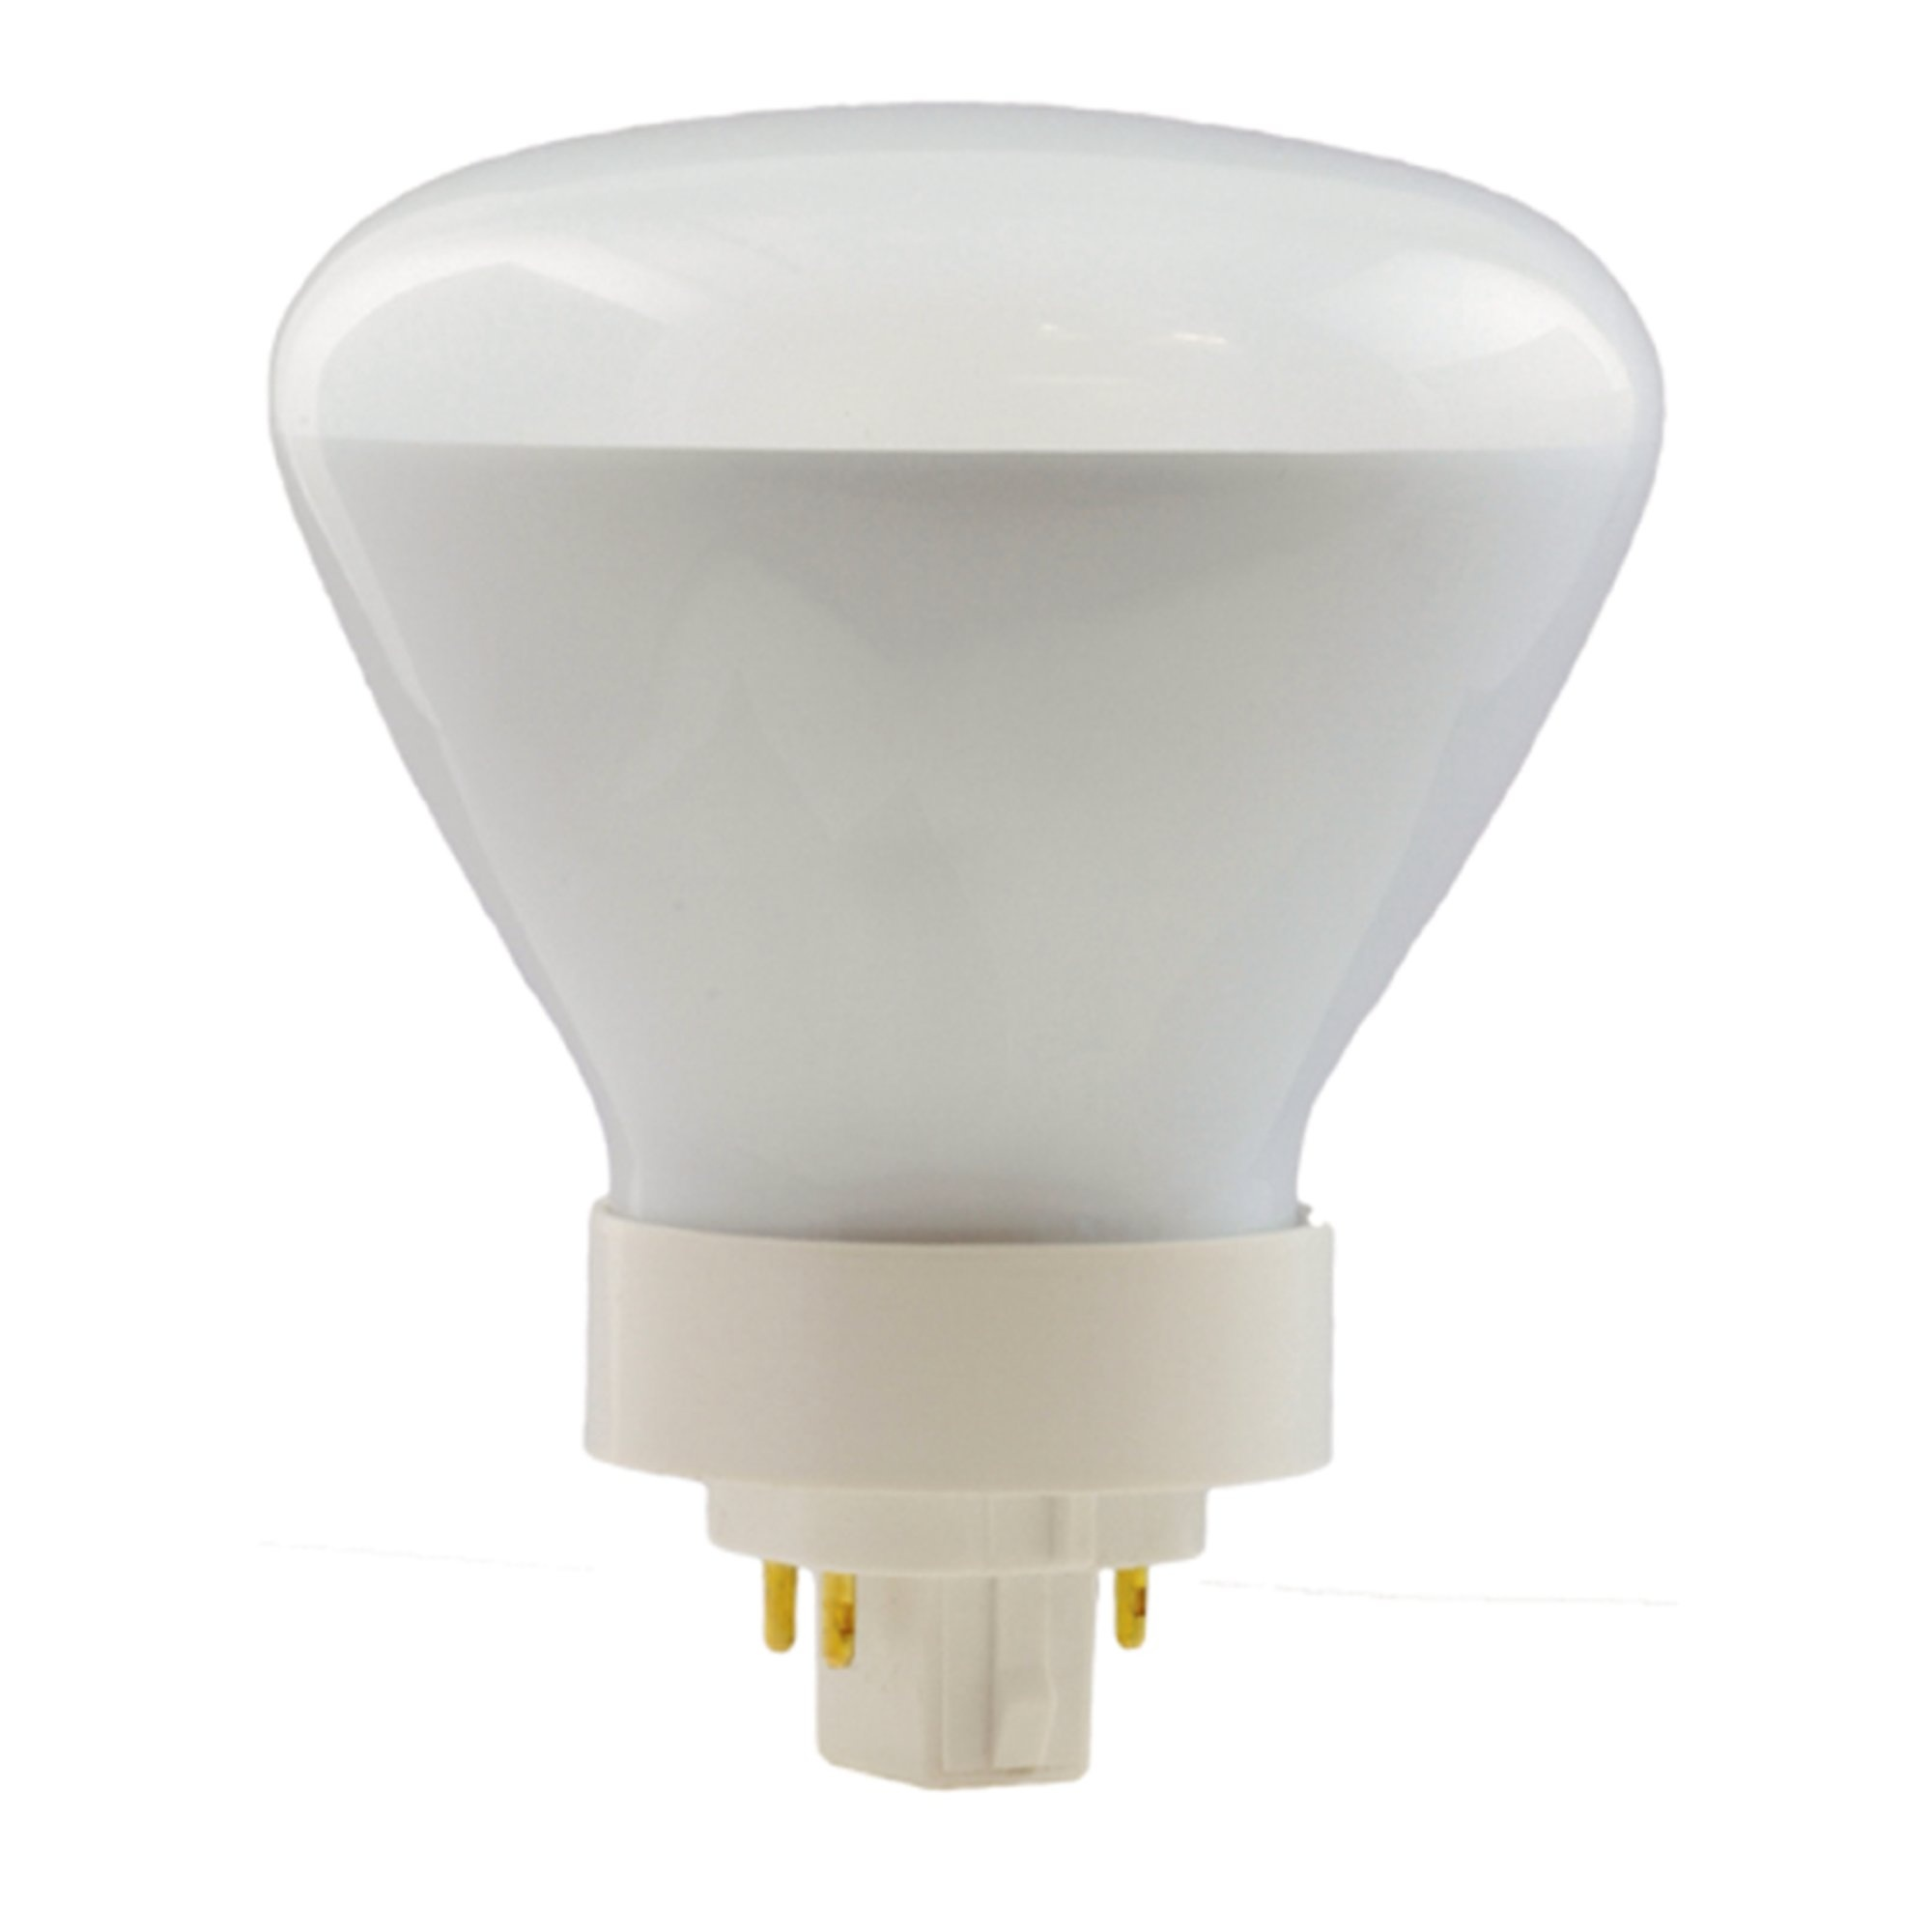 PBB 14 Replacement Bulb - Expired - Fantech